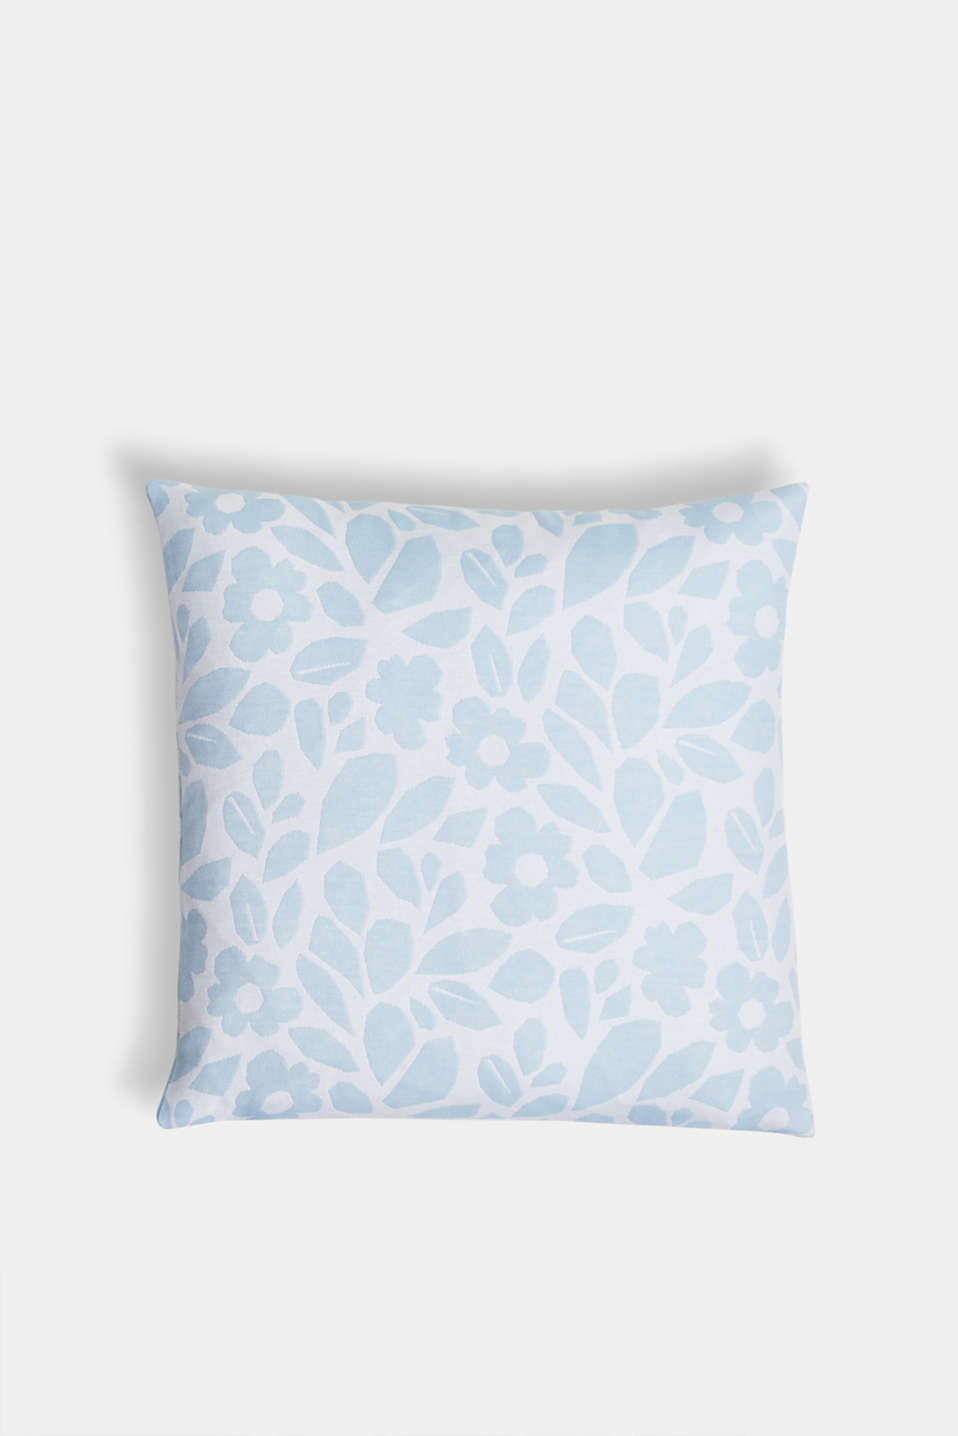 Esprit - Cushion cover with a floral pattern